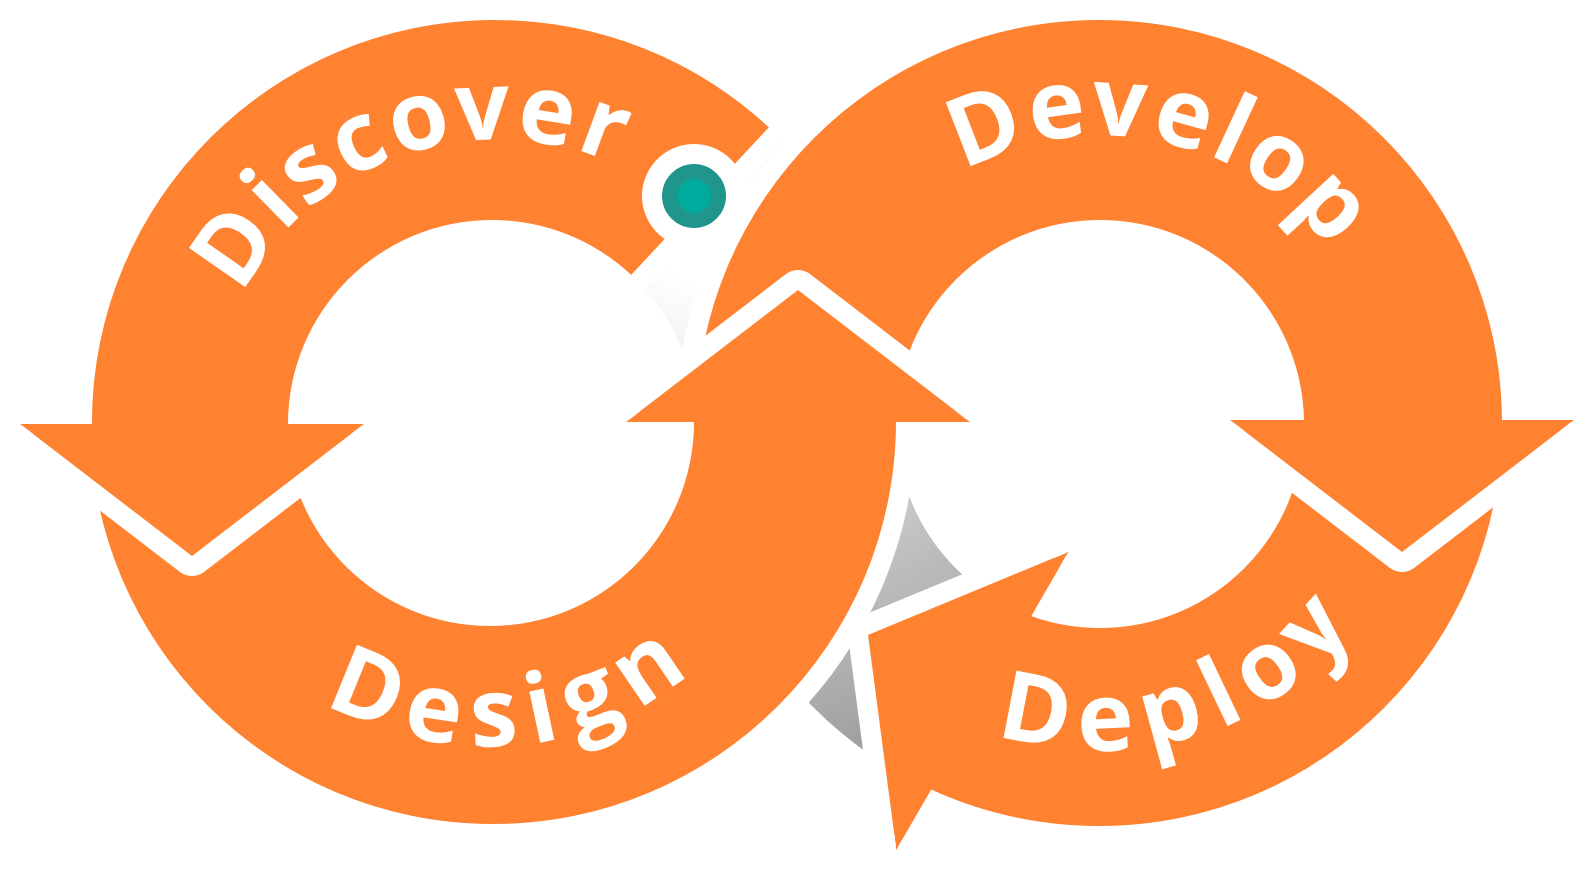 Our agile process - Discover, Design, Develop, Deploy